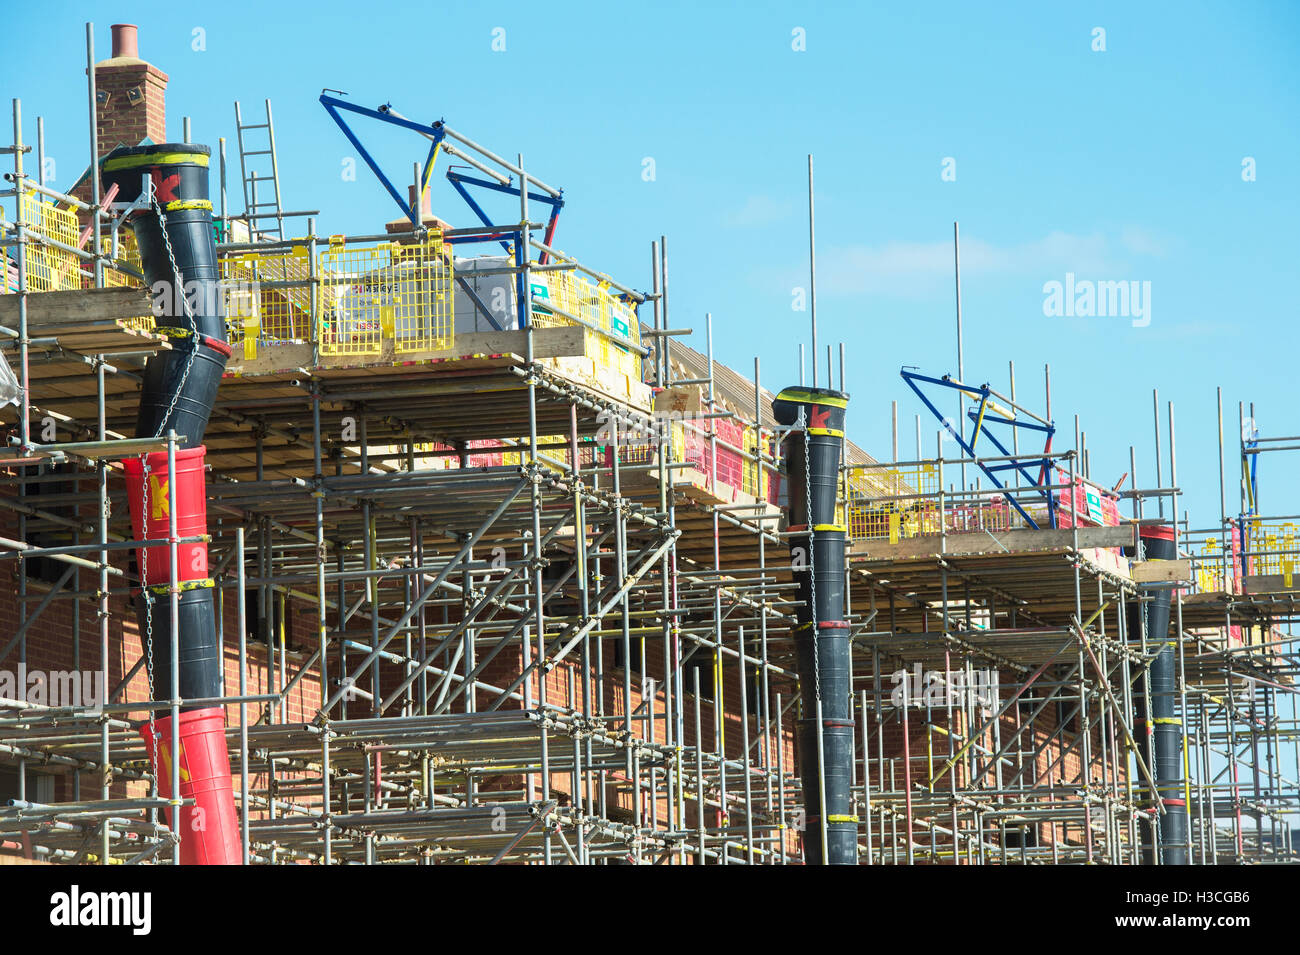 Scaffolding around new build houses in Banbury, Oxfordshire, England - Stock Image